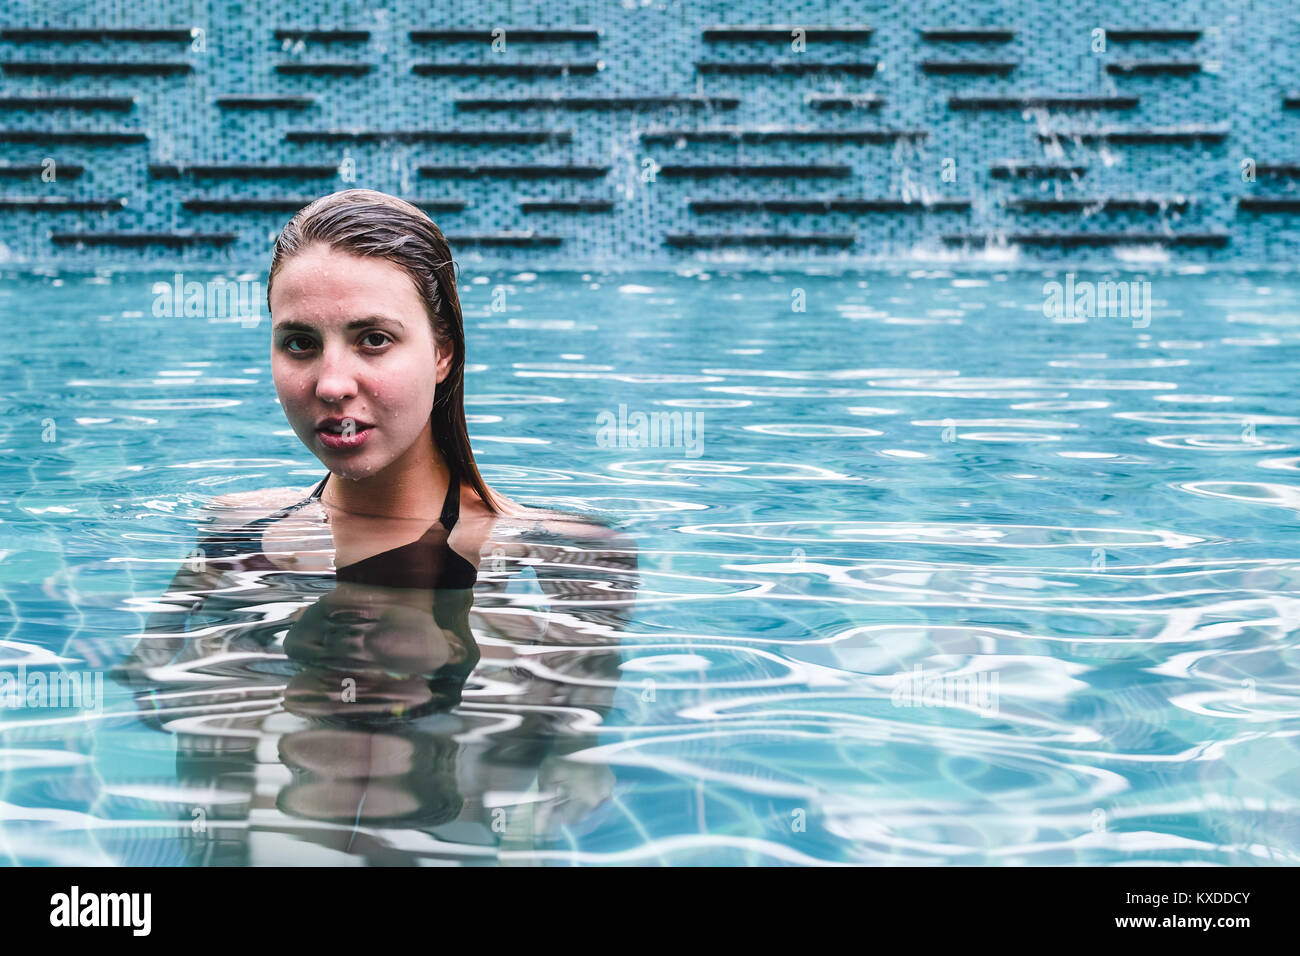 Photo of Girl on a Swimming Pool of a Resort Stock Photo